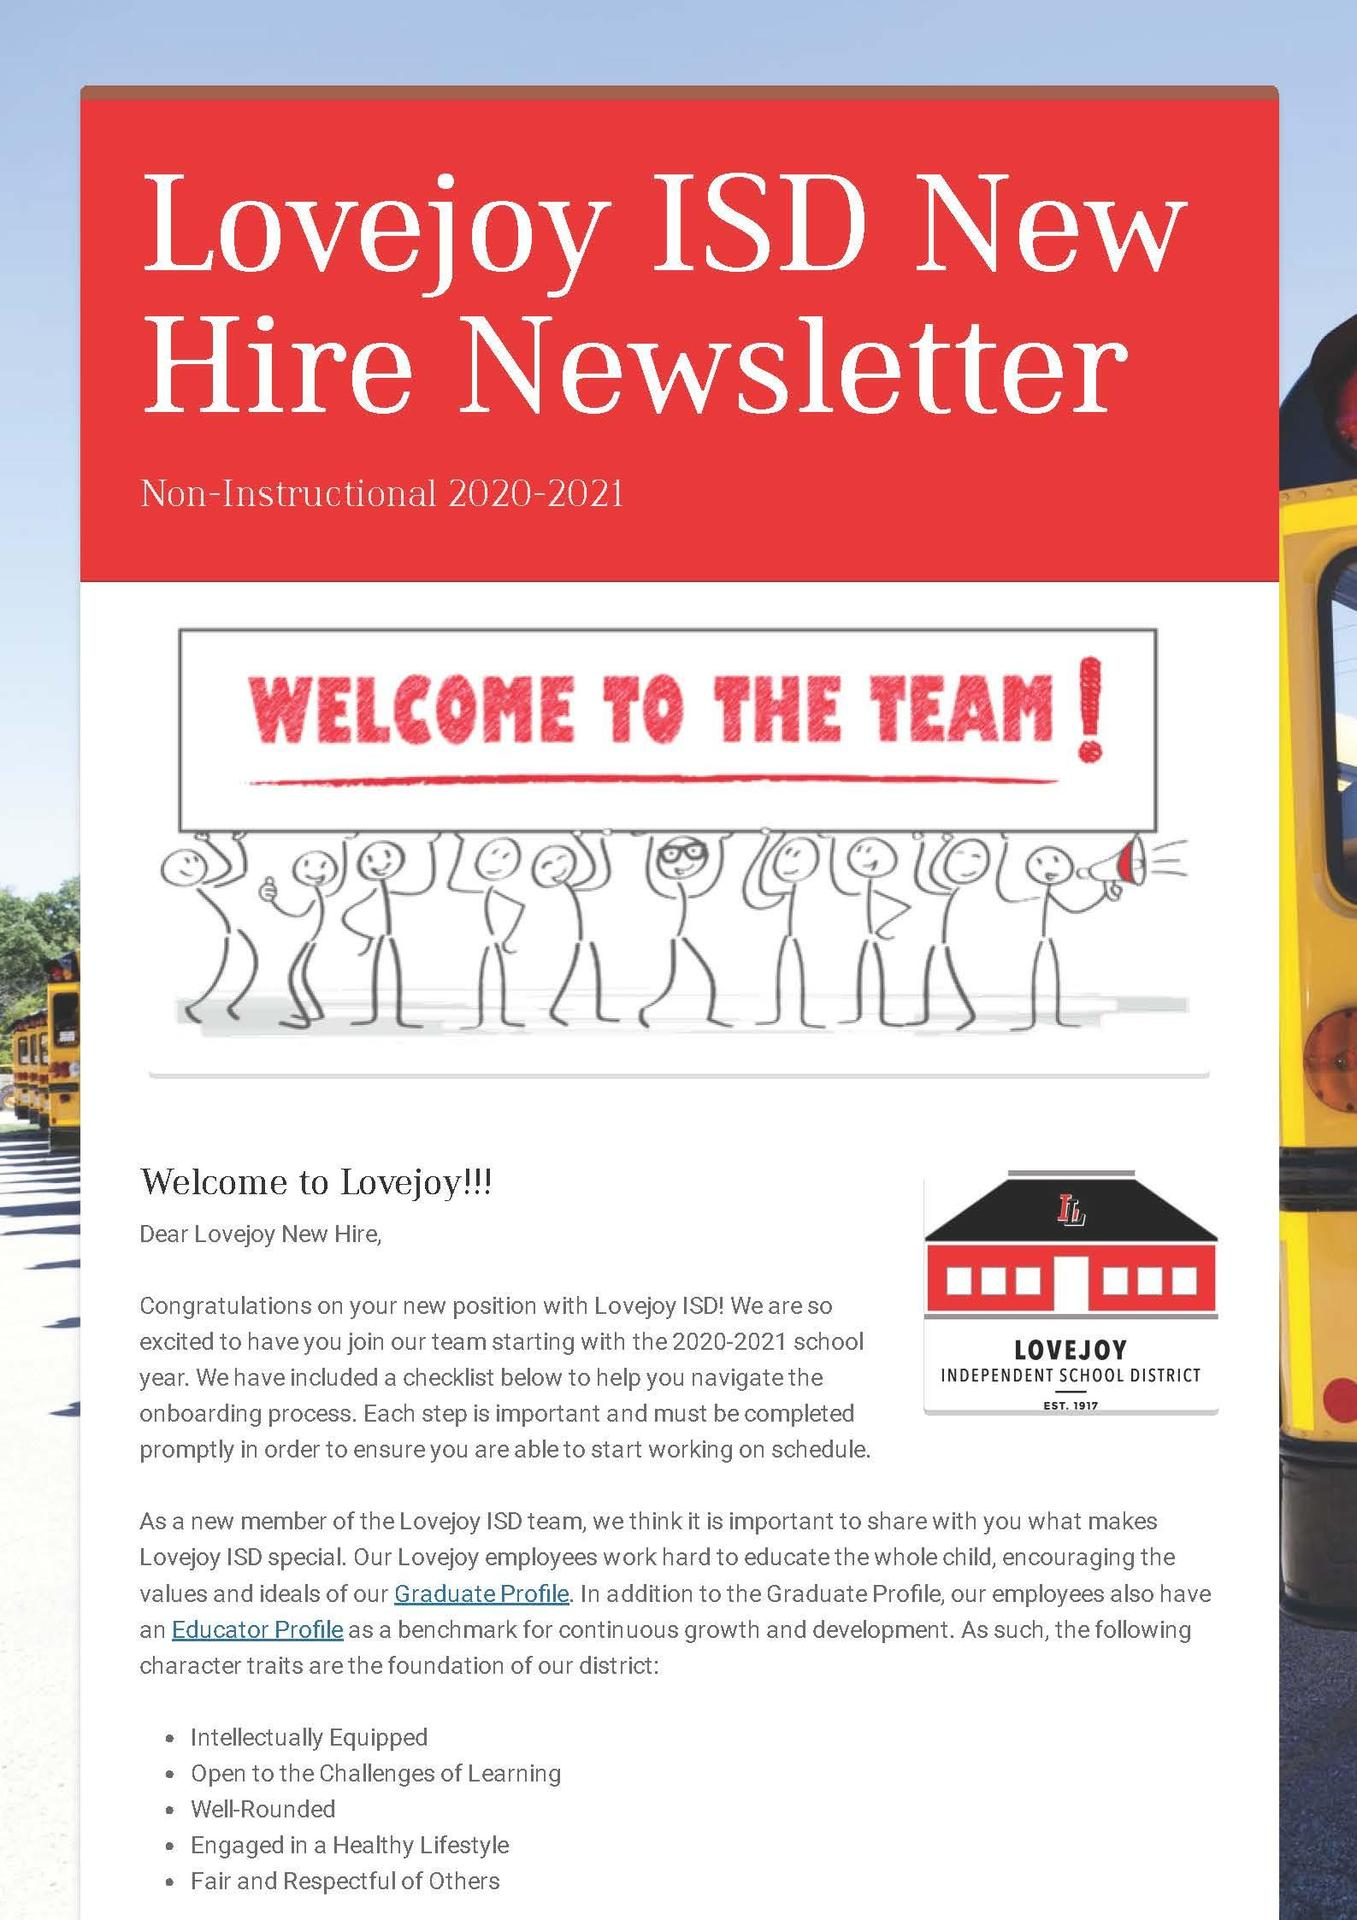 Non-Instructional Newsletter